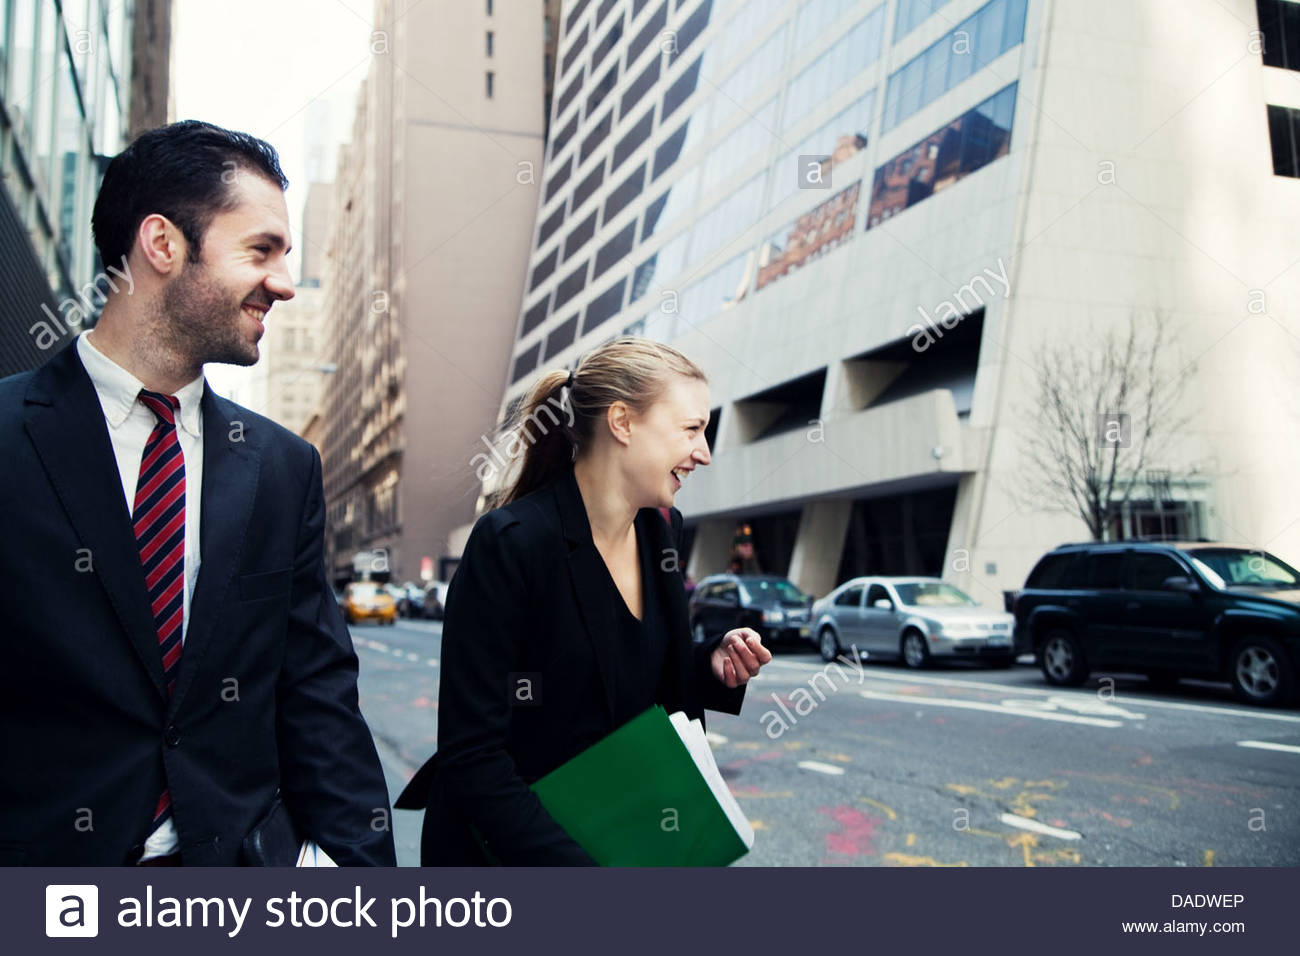 Businessman and businesswoman walking on city street and laughing - Stock Image